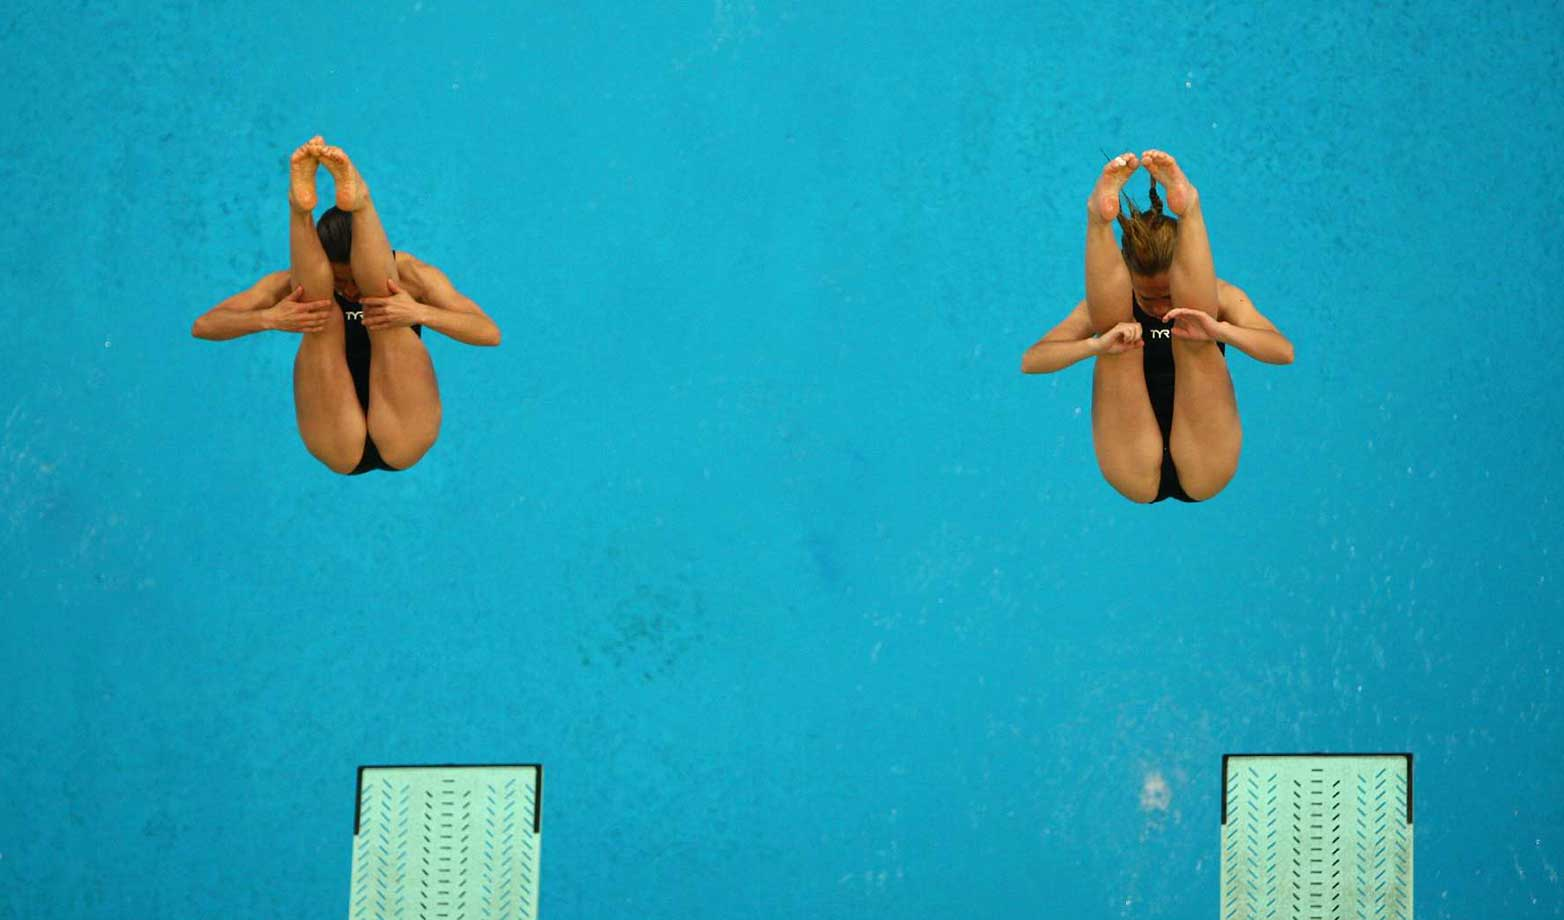 Julia Pakhalina, left, and Anastasia Pozdnyakova of Russia competing in the synchronized springboard final at the 2008 Summer Olympics in Beijing.